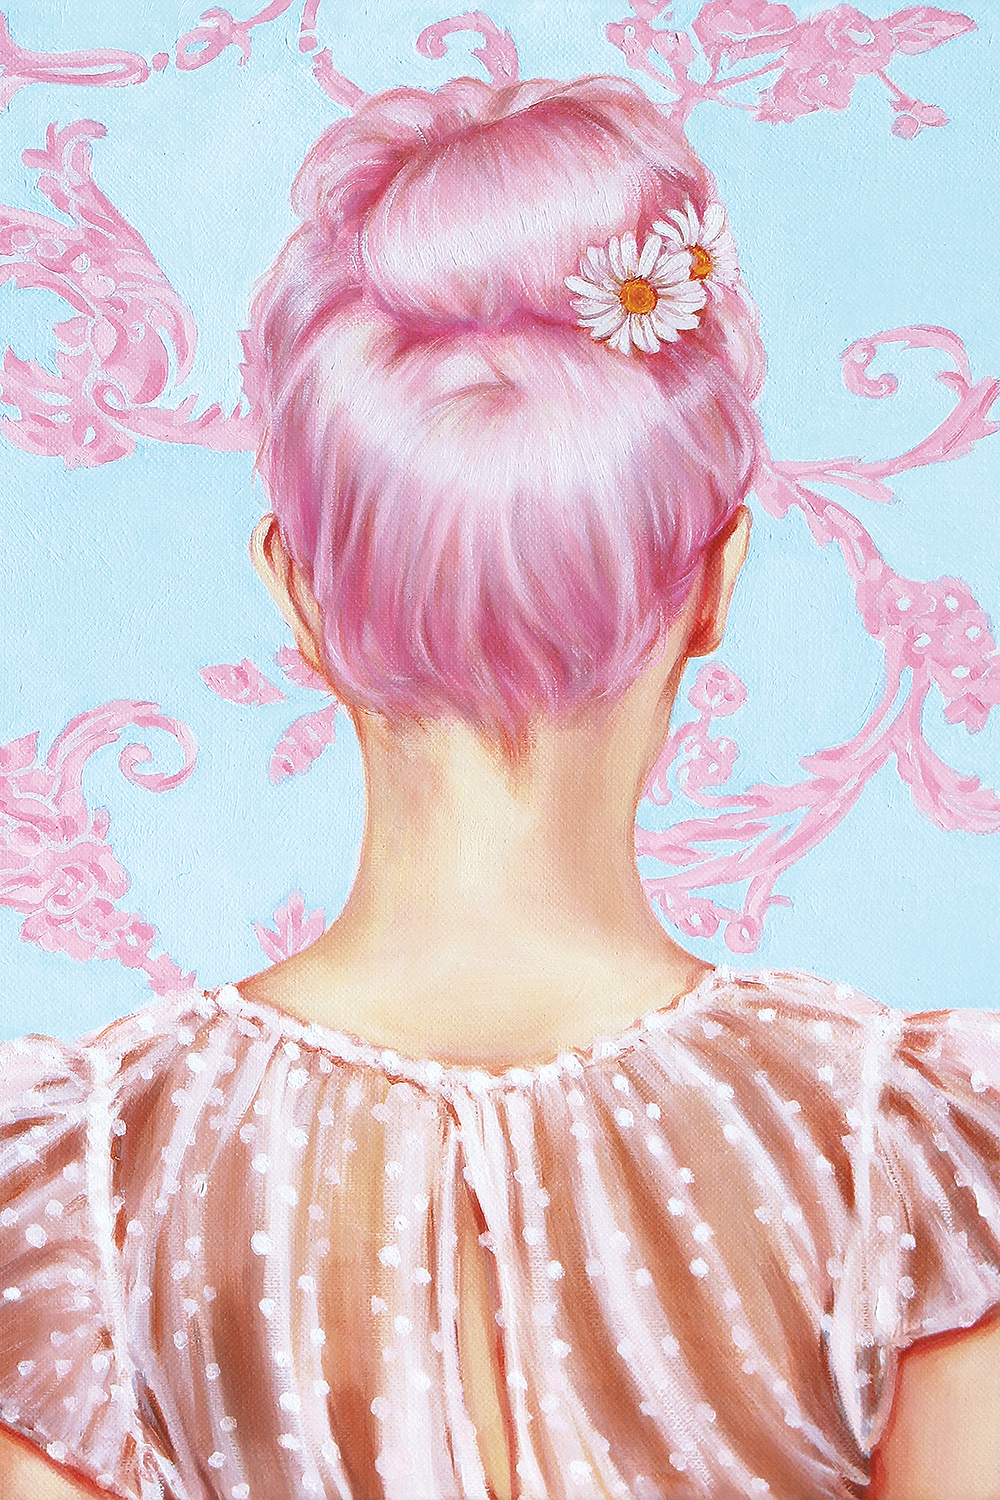 Image of woman with pink hair with daisies pinned to it with her back turned against a light blue and pink filigree patterned wall